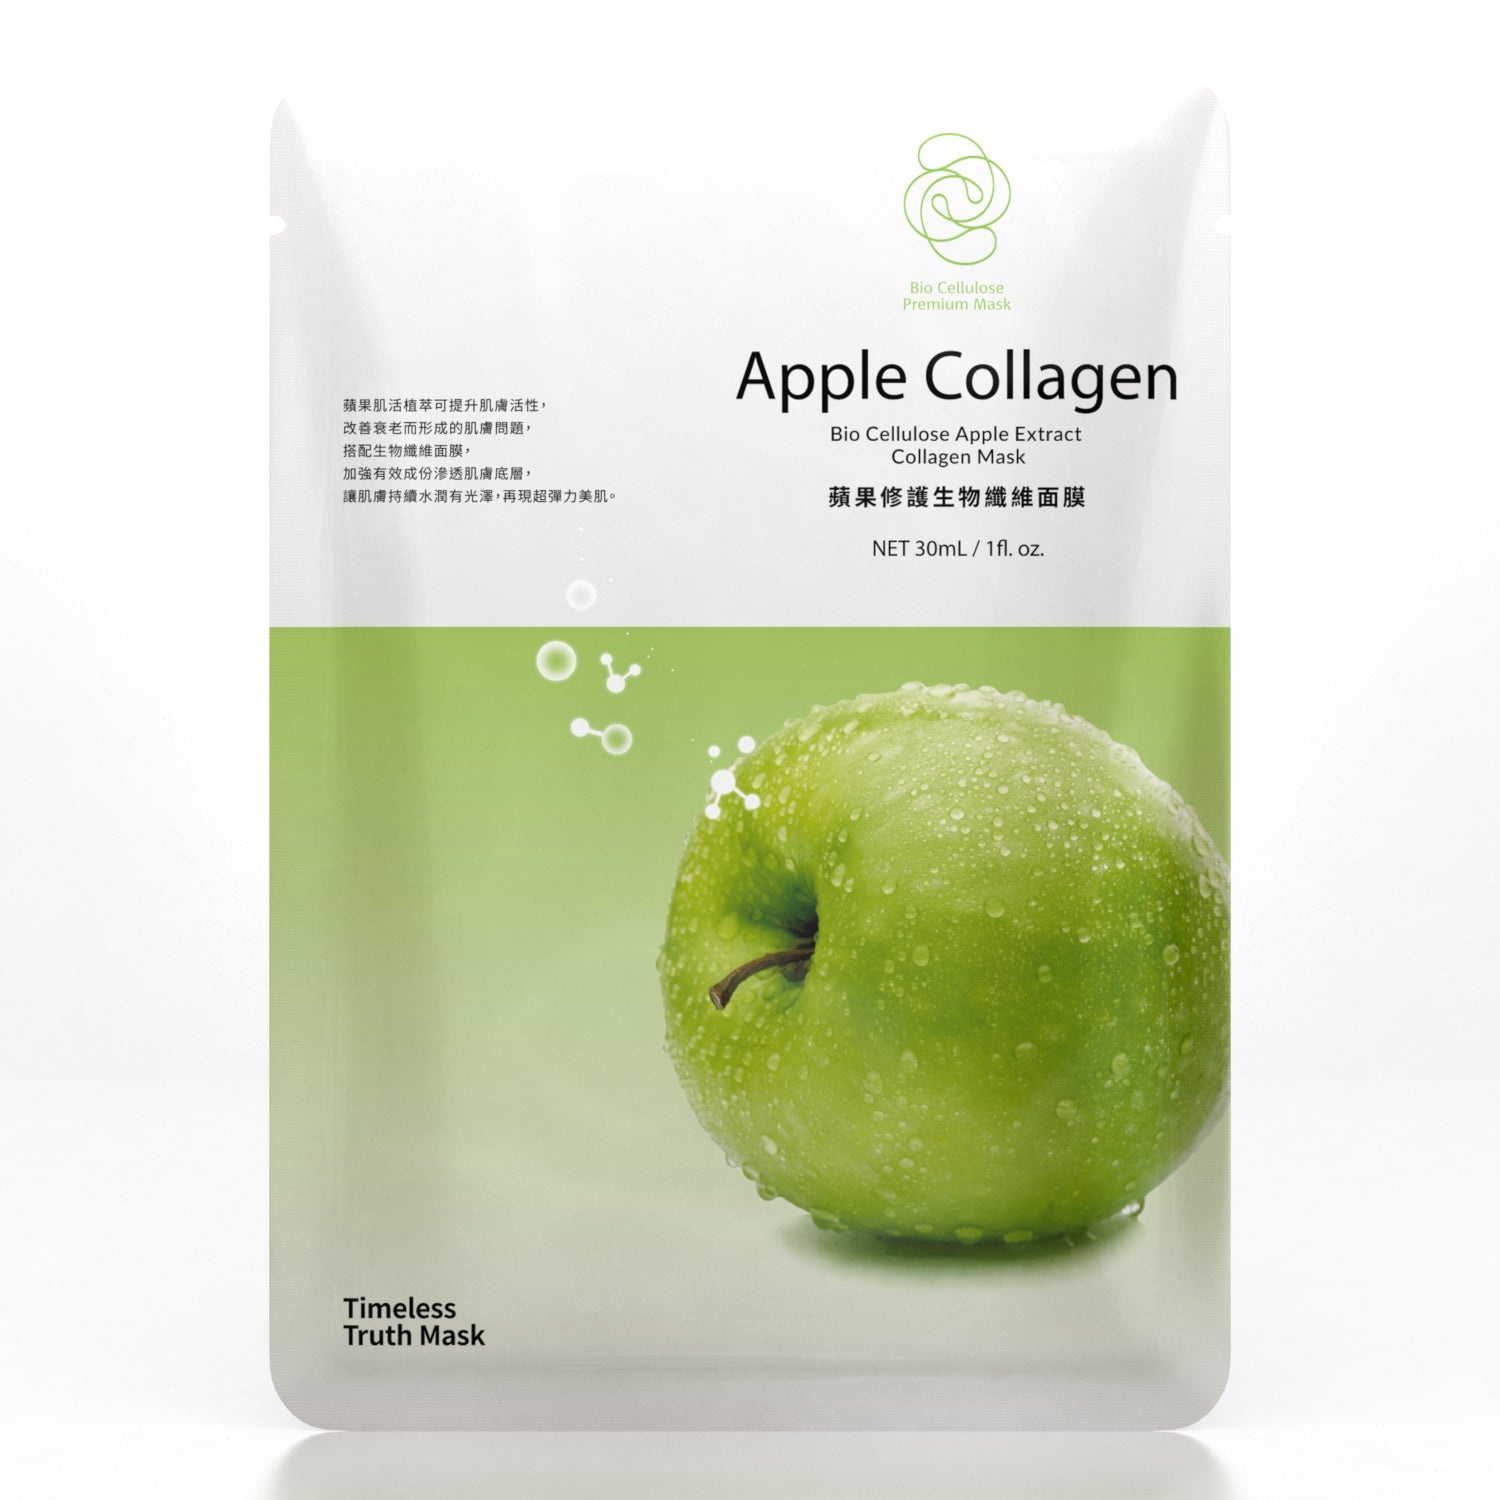 Bio Cellulose Apple Extract Collagen Mask